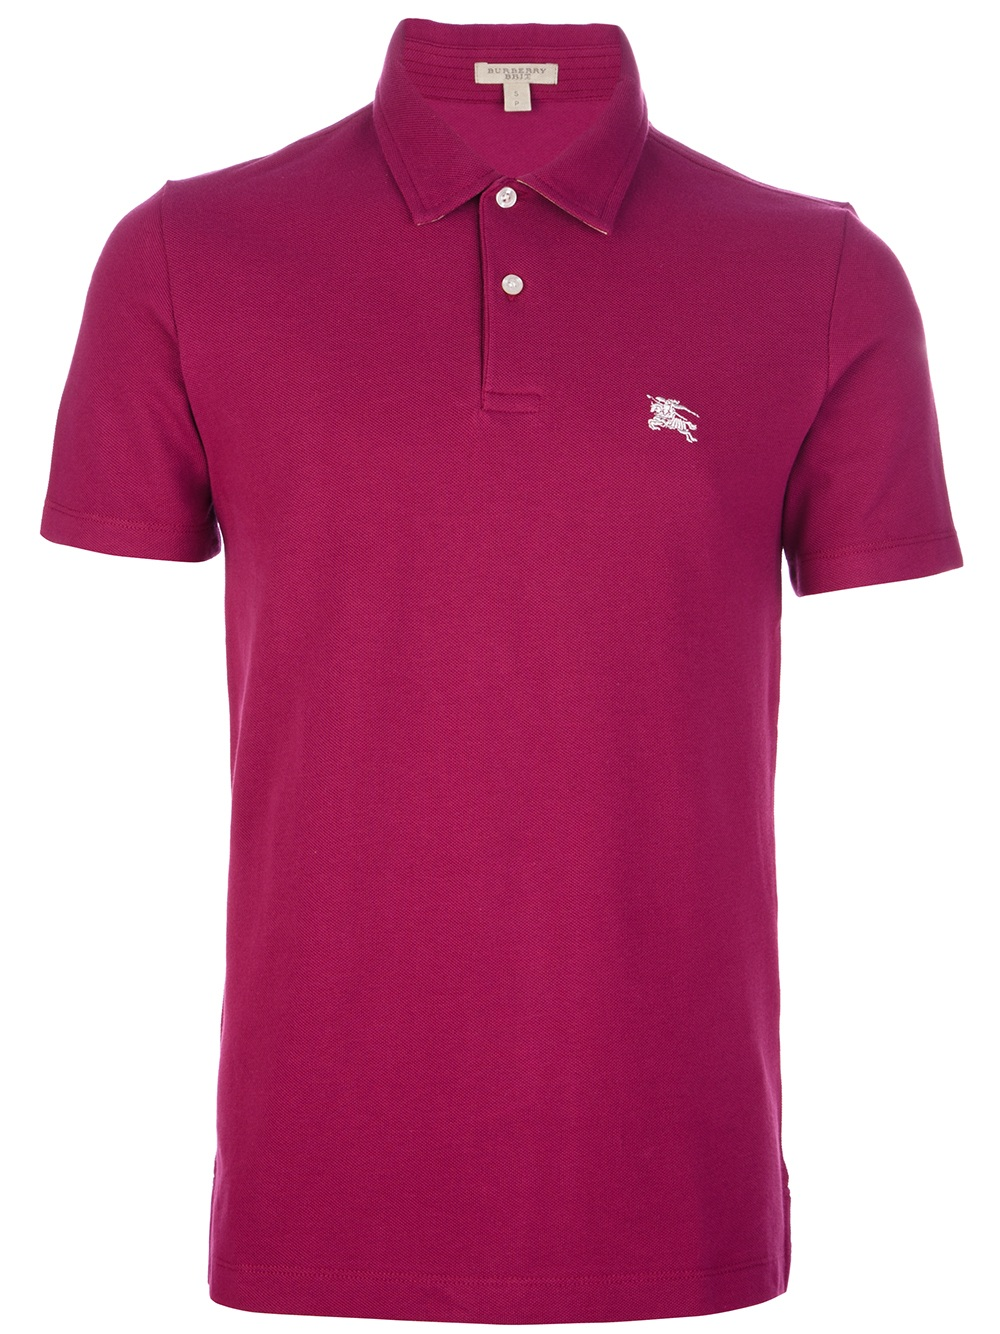 Burberry Brit Classic Polo Shirt In Red For Men Raspberry